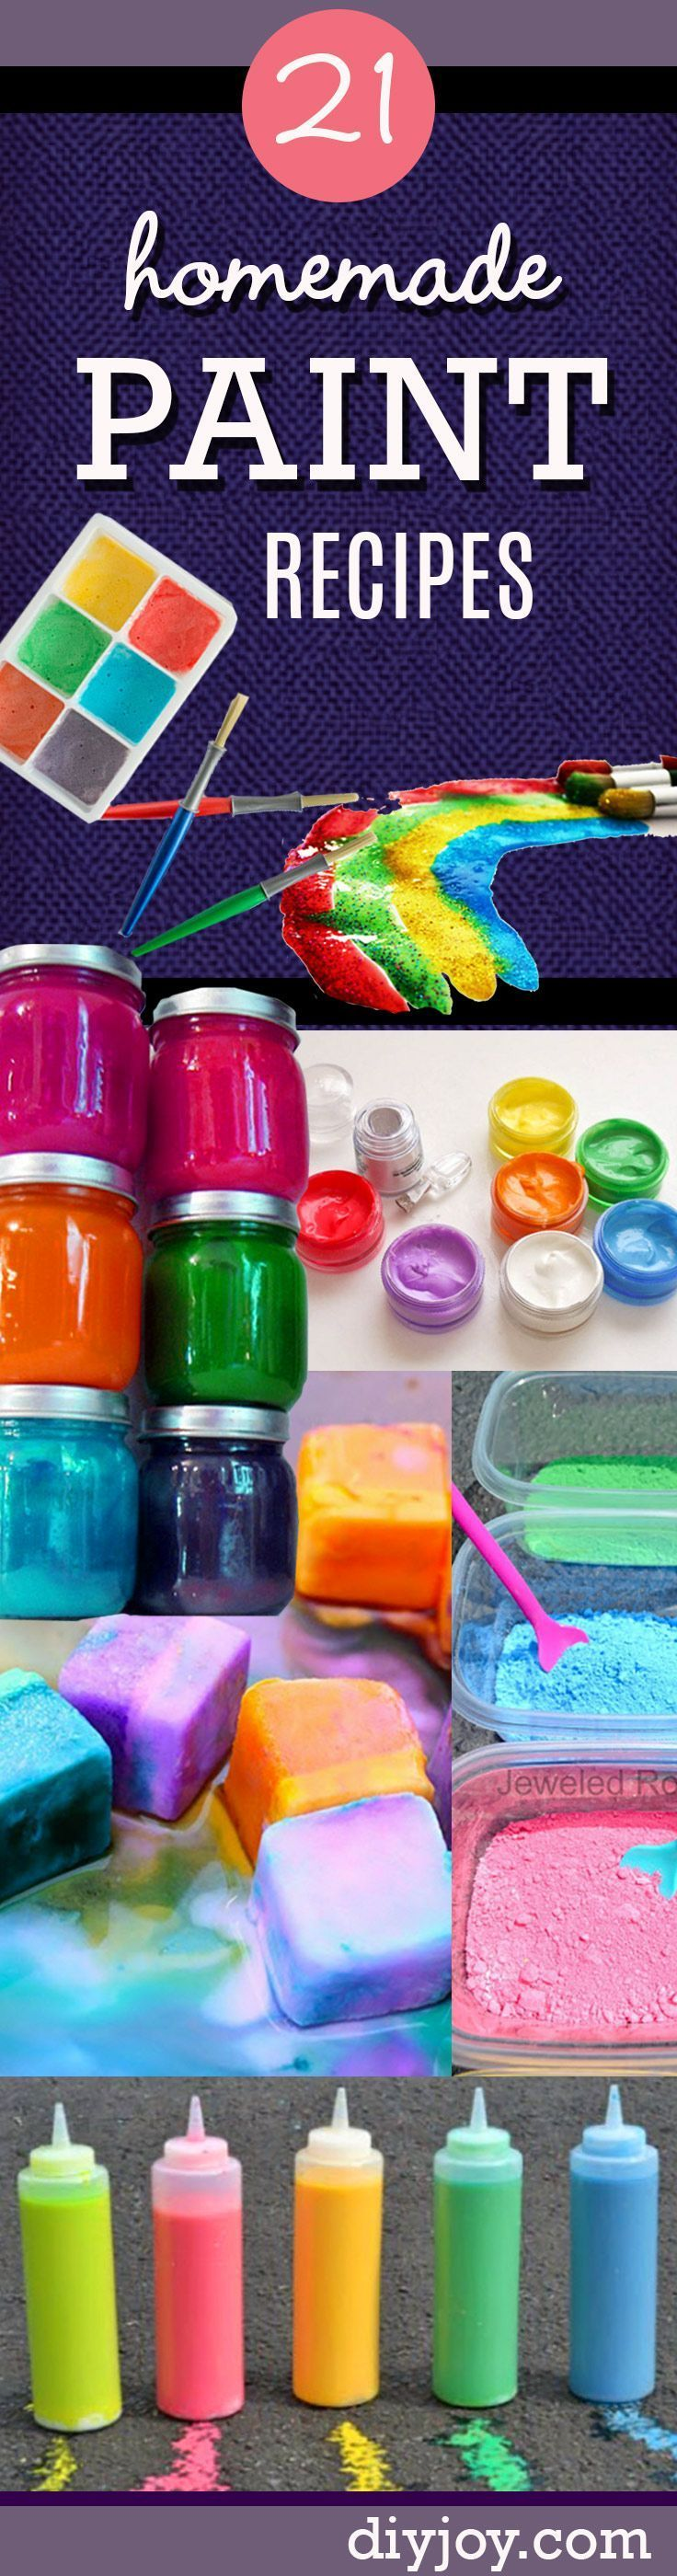 Boys arts and crafts - 21 Easy Diy Paint Recipes Your Kids Will Go Crazy For Crafts For Boyscrafts